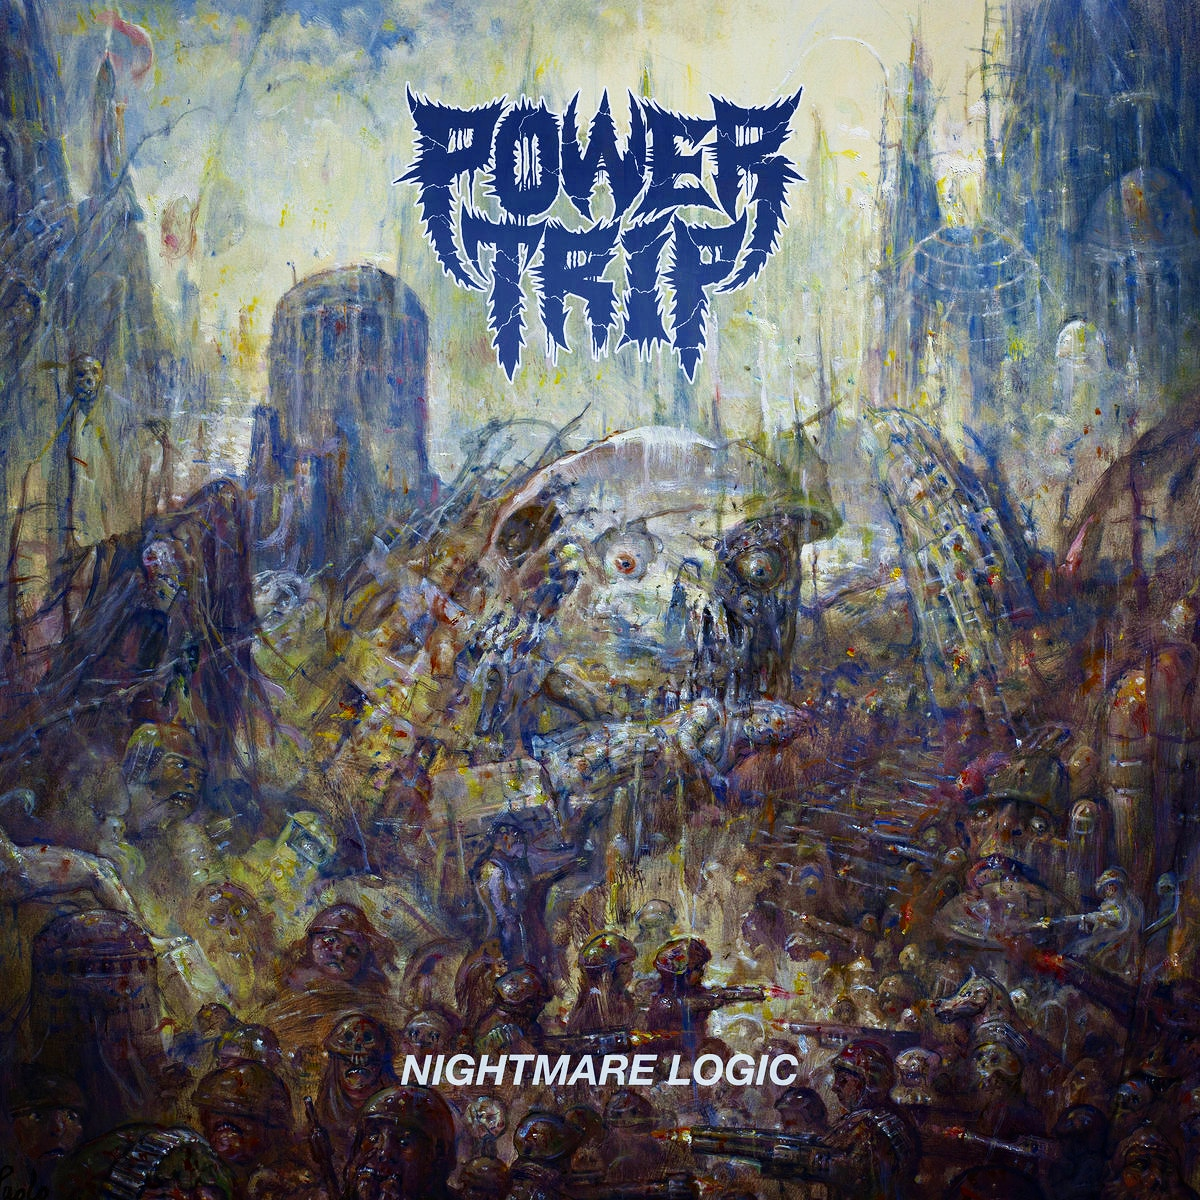 Power Trip tragically lost their amazing singer Riley Gale at the age of 34. Such an amazing person. Heart breaking.   Do you think Power Trip will try to continue on?  @powertriptx #thrash #thrashmetal #crossover #metal #deathmetal #rileygale #heavymetal #headbangers #metalhead https://t.co/YamCLCFsF8